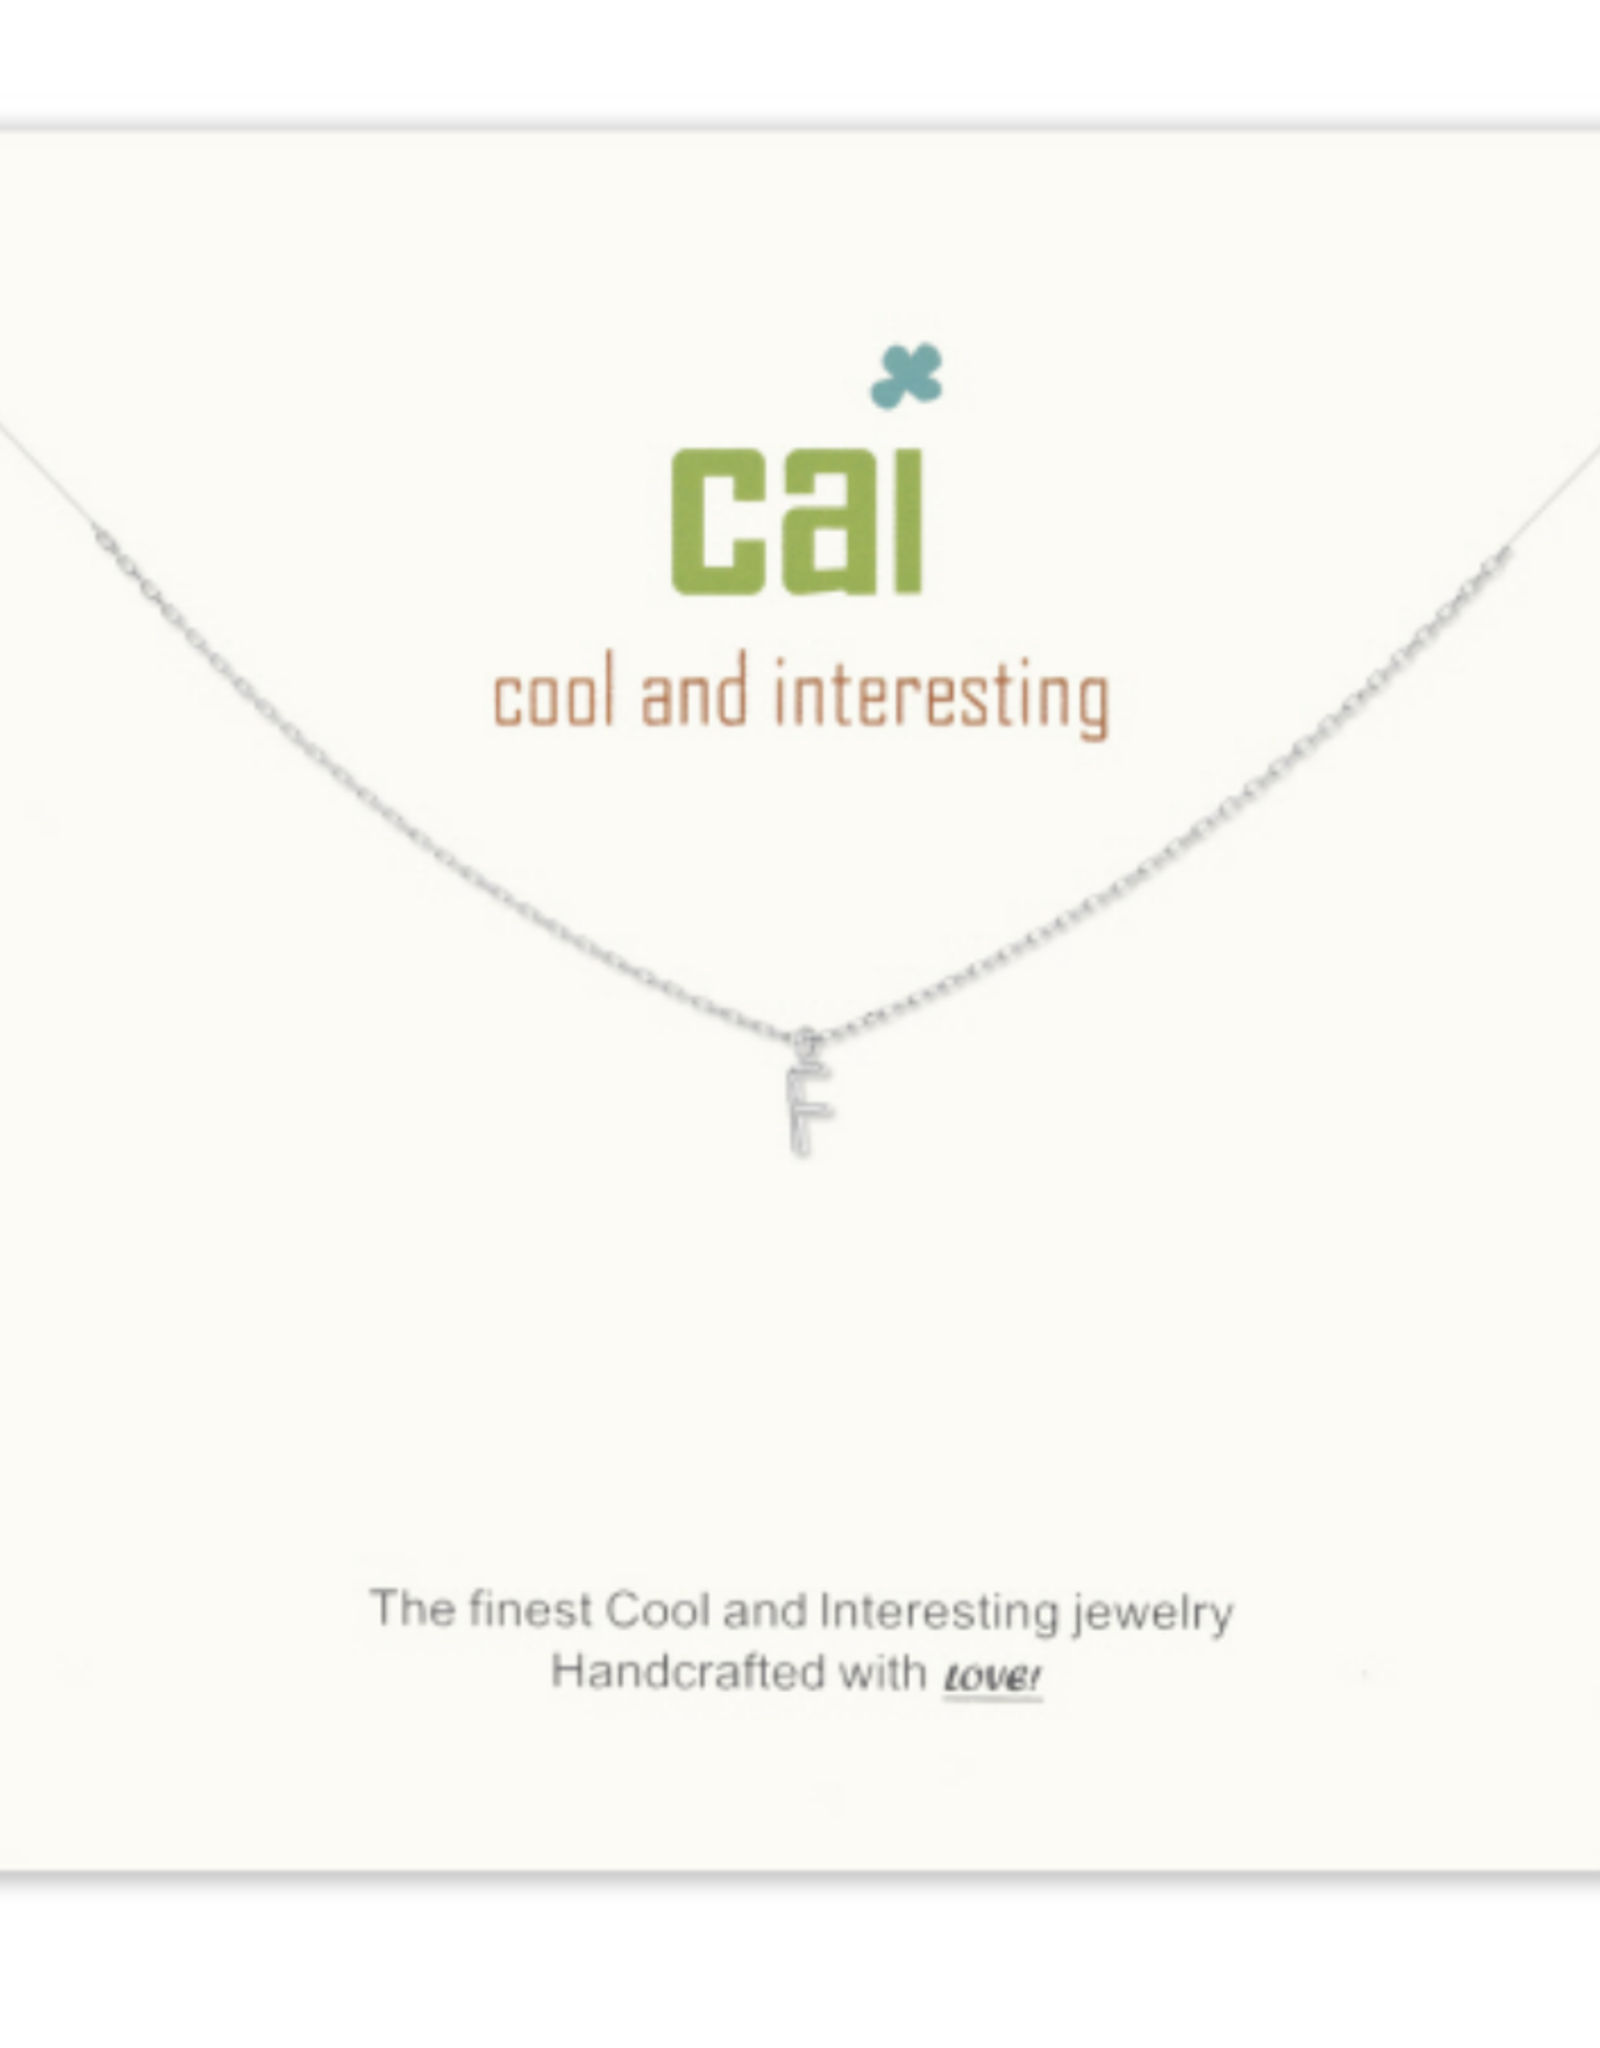 CAI - Silver Mini Initial Neckalace - 16in-2in ext